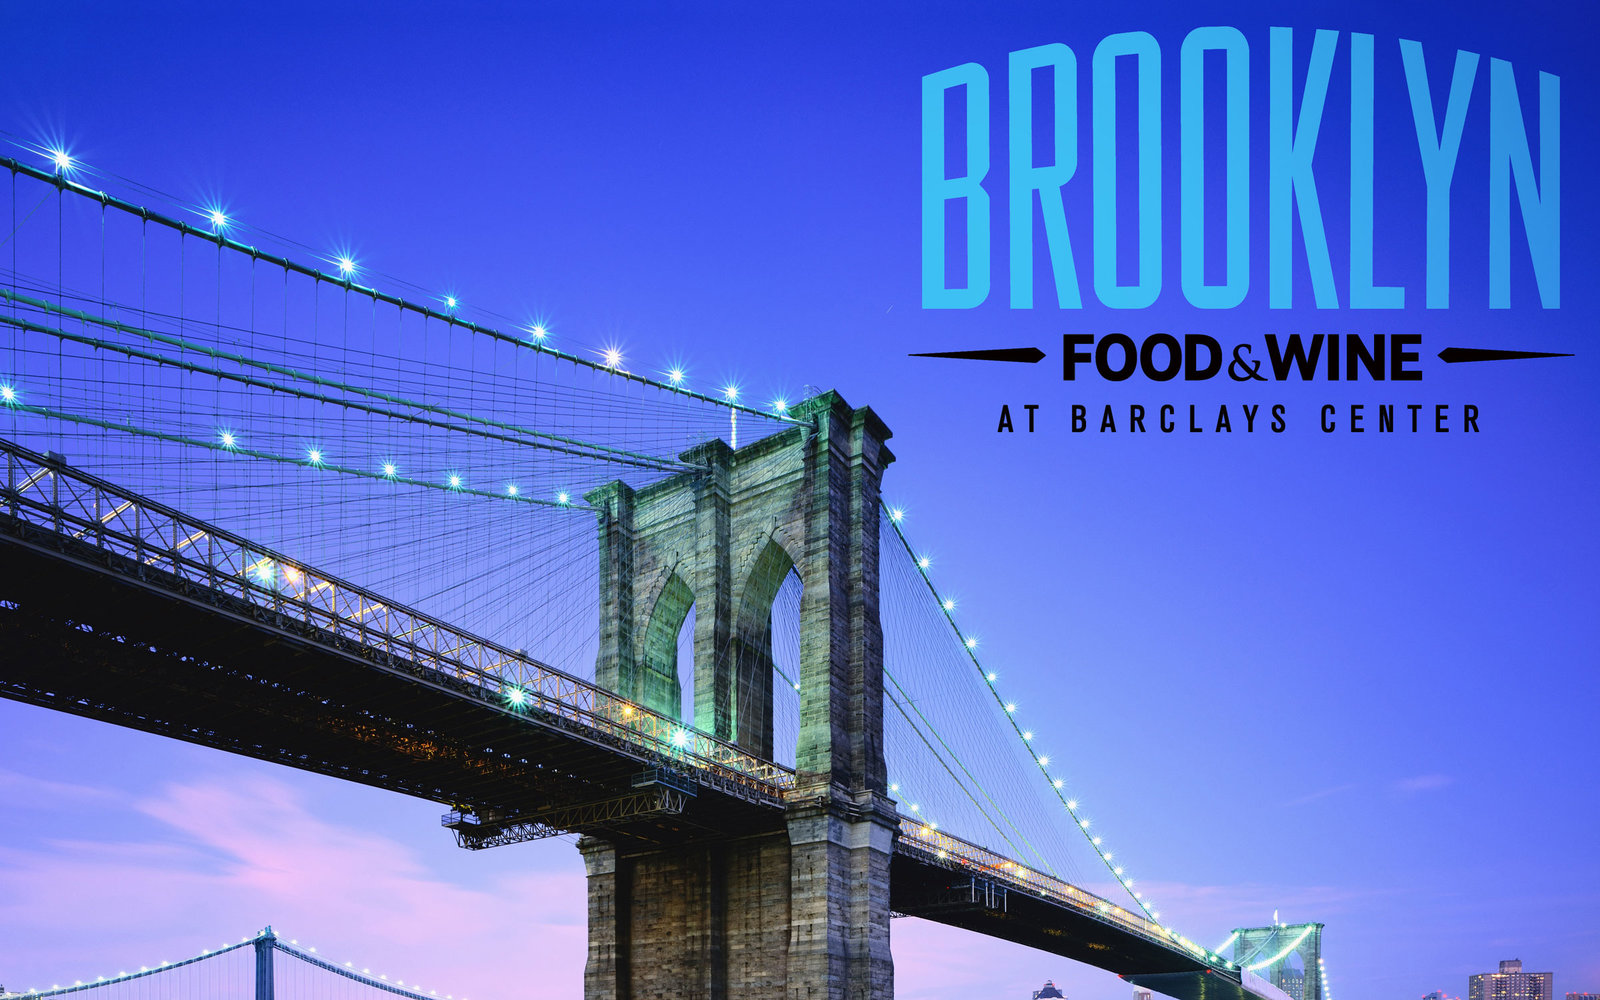 brooklyn-bridge-food-wine-festival-BFWF0915.jpg